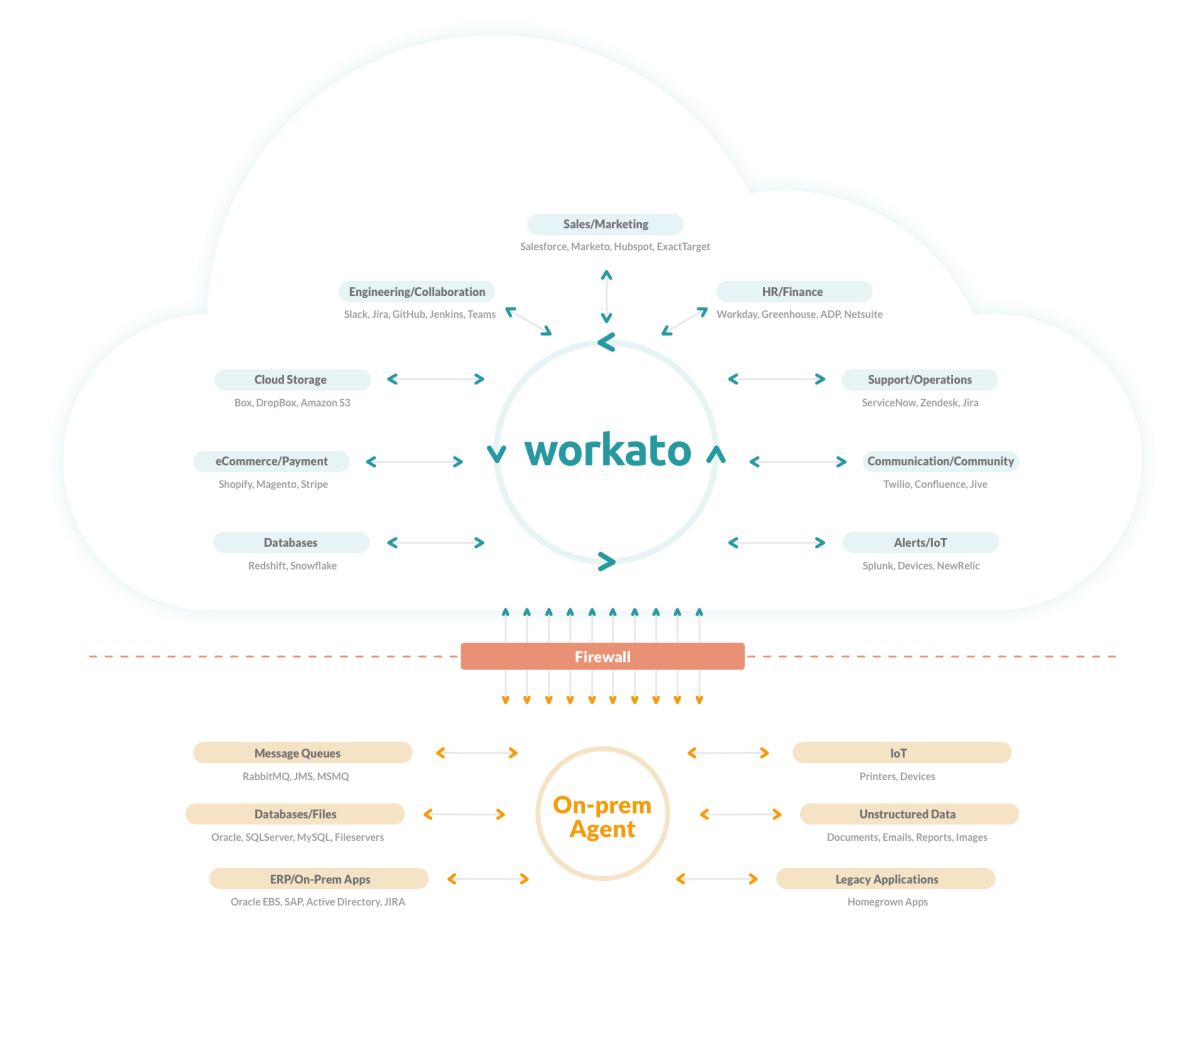 Workato is a useful tool for on-premise integration